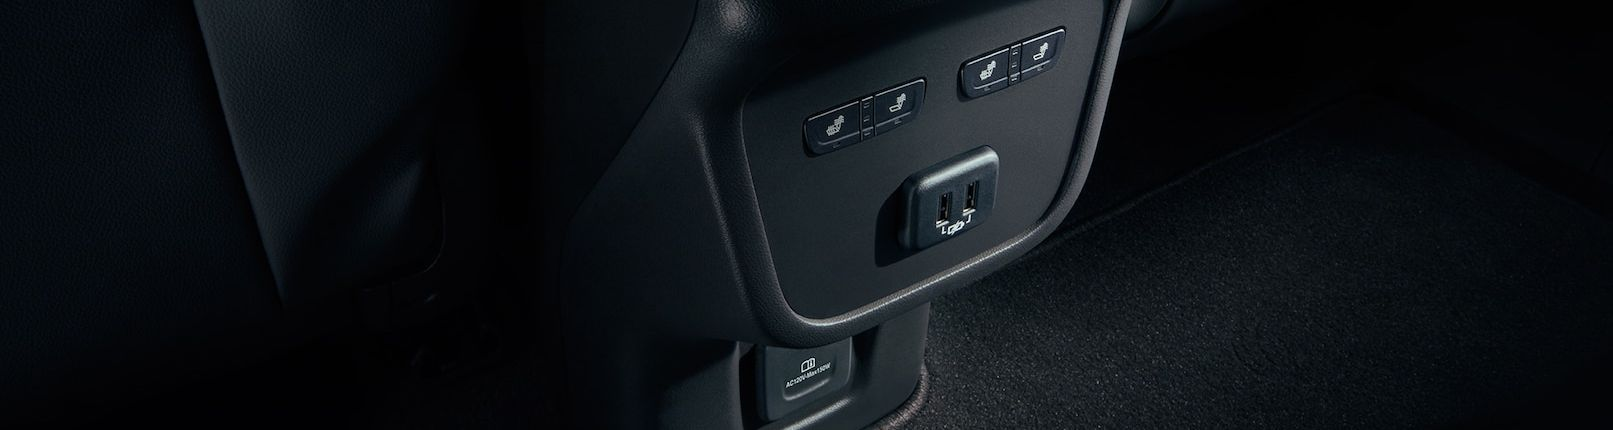 Power Options in the 2019 Equinox